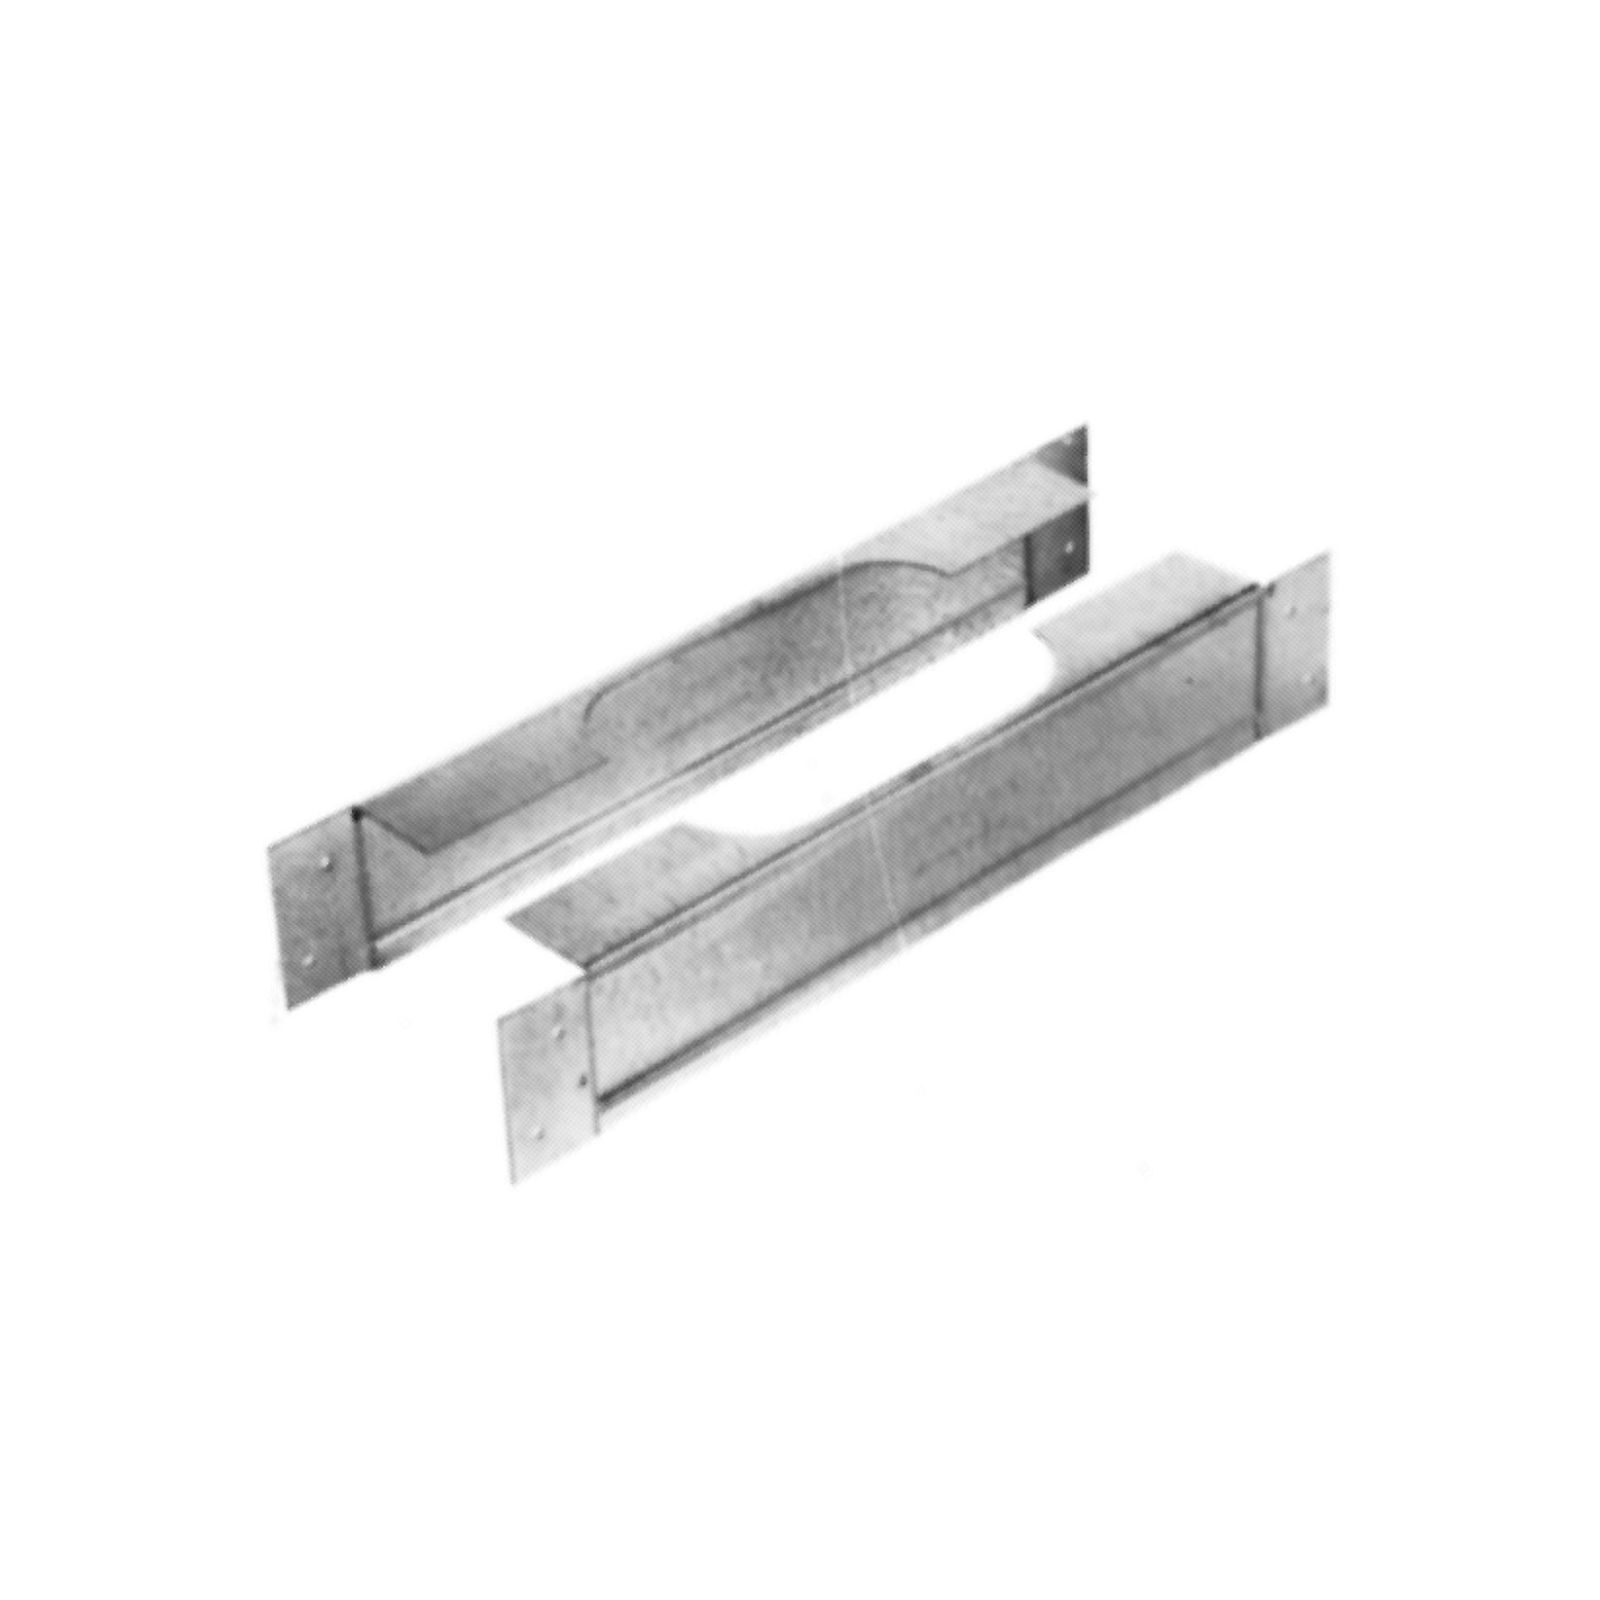 "AmeriVent 40FS - Oval Firestop Spacer, 4"", Wall 2"" X 4"""